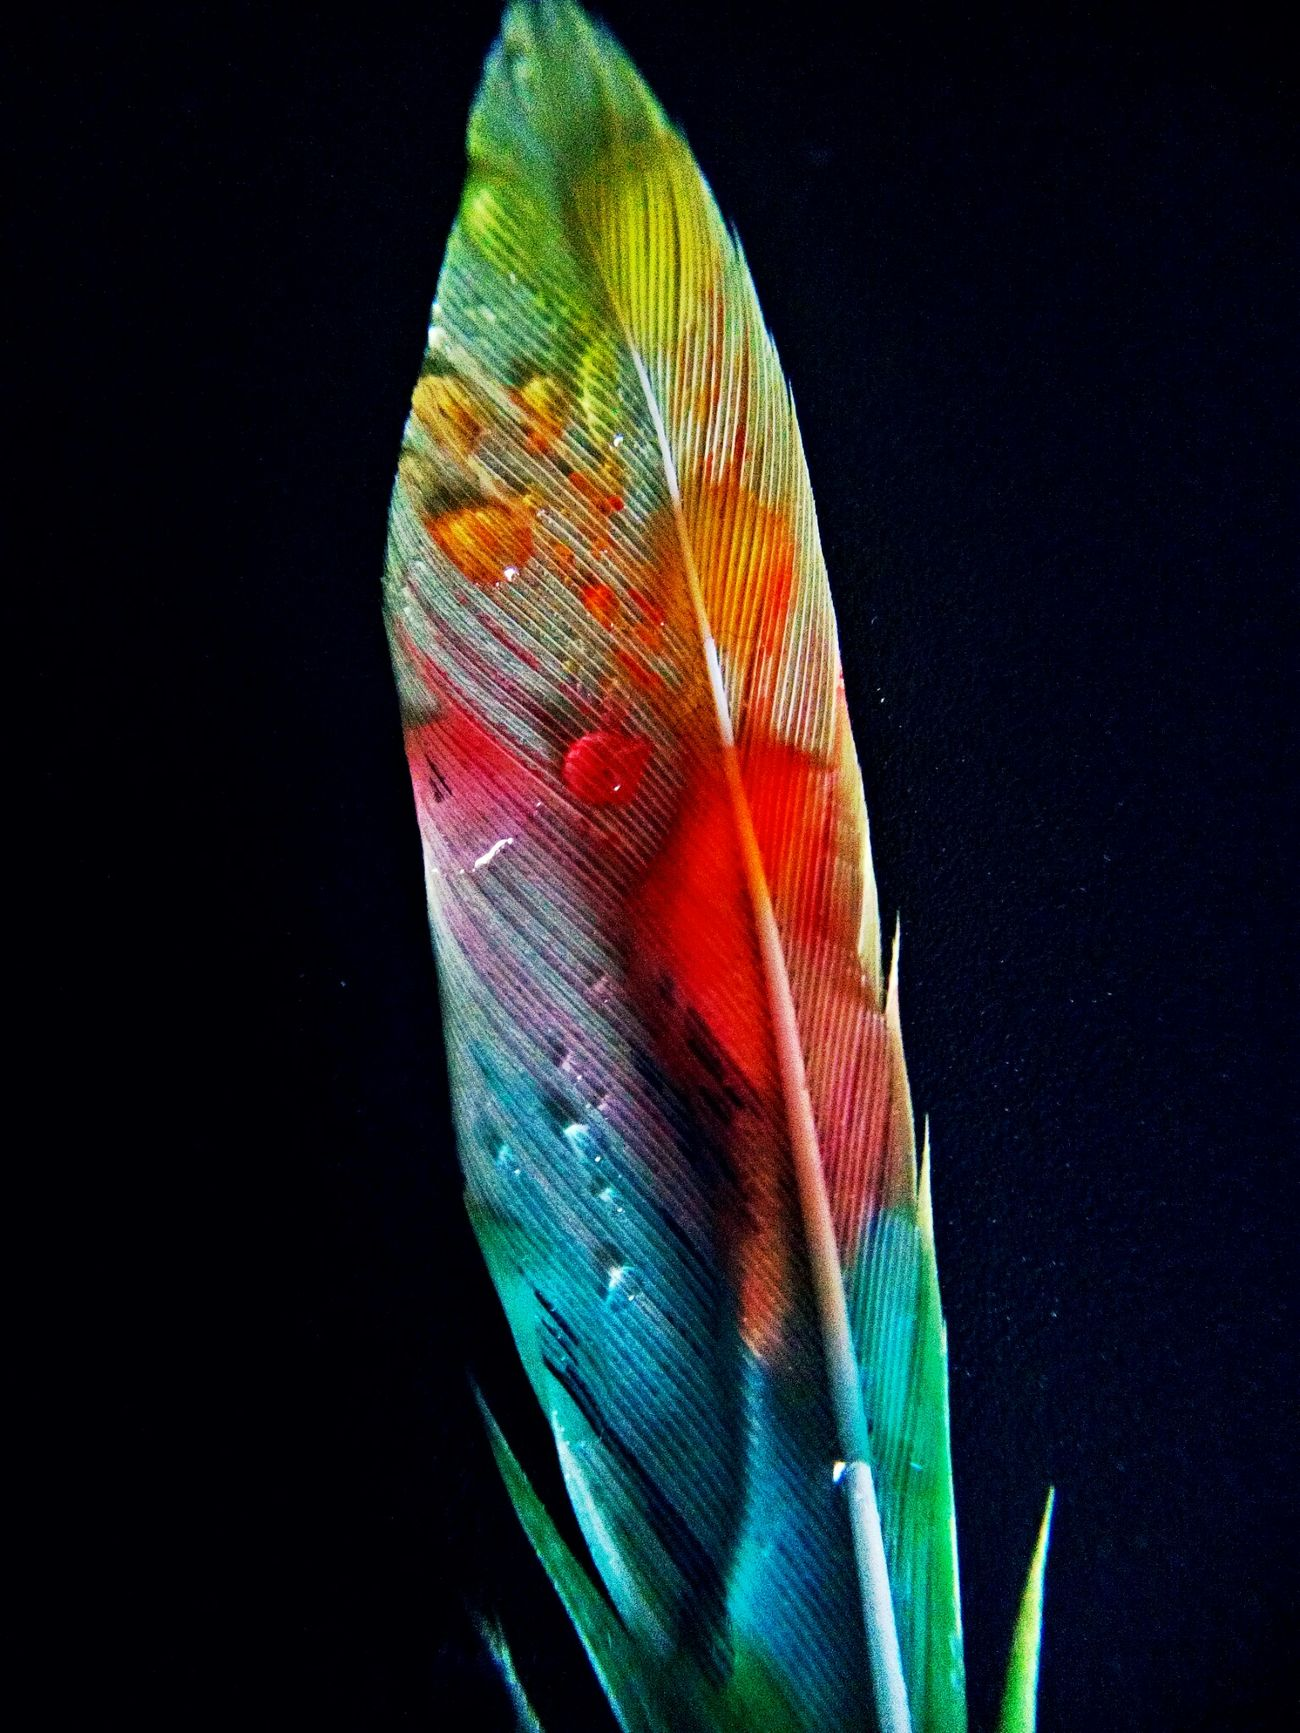 Black Background Close-up No People Multi Colored Feder Feather  Feather_perfection Feathers Of A Bird Vogelfeder Vogelfeger Nach Dem Regen Bund Angemalt Painted Colorful Rainbow Waterdrop Waterdrops Macro Macrophotography Makrofotografie Makro Beautiful